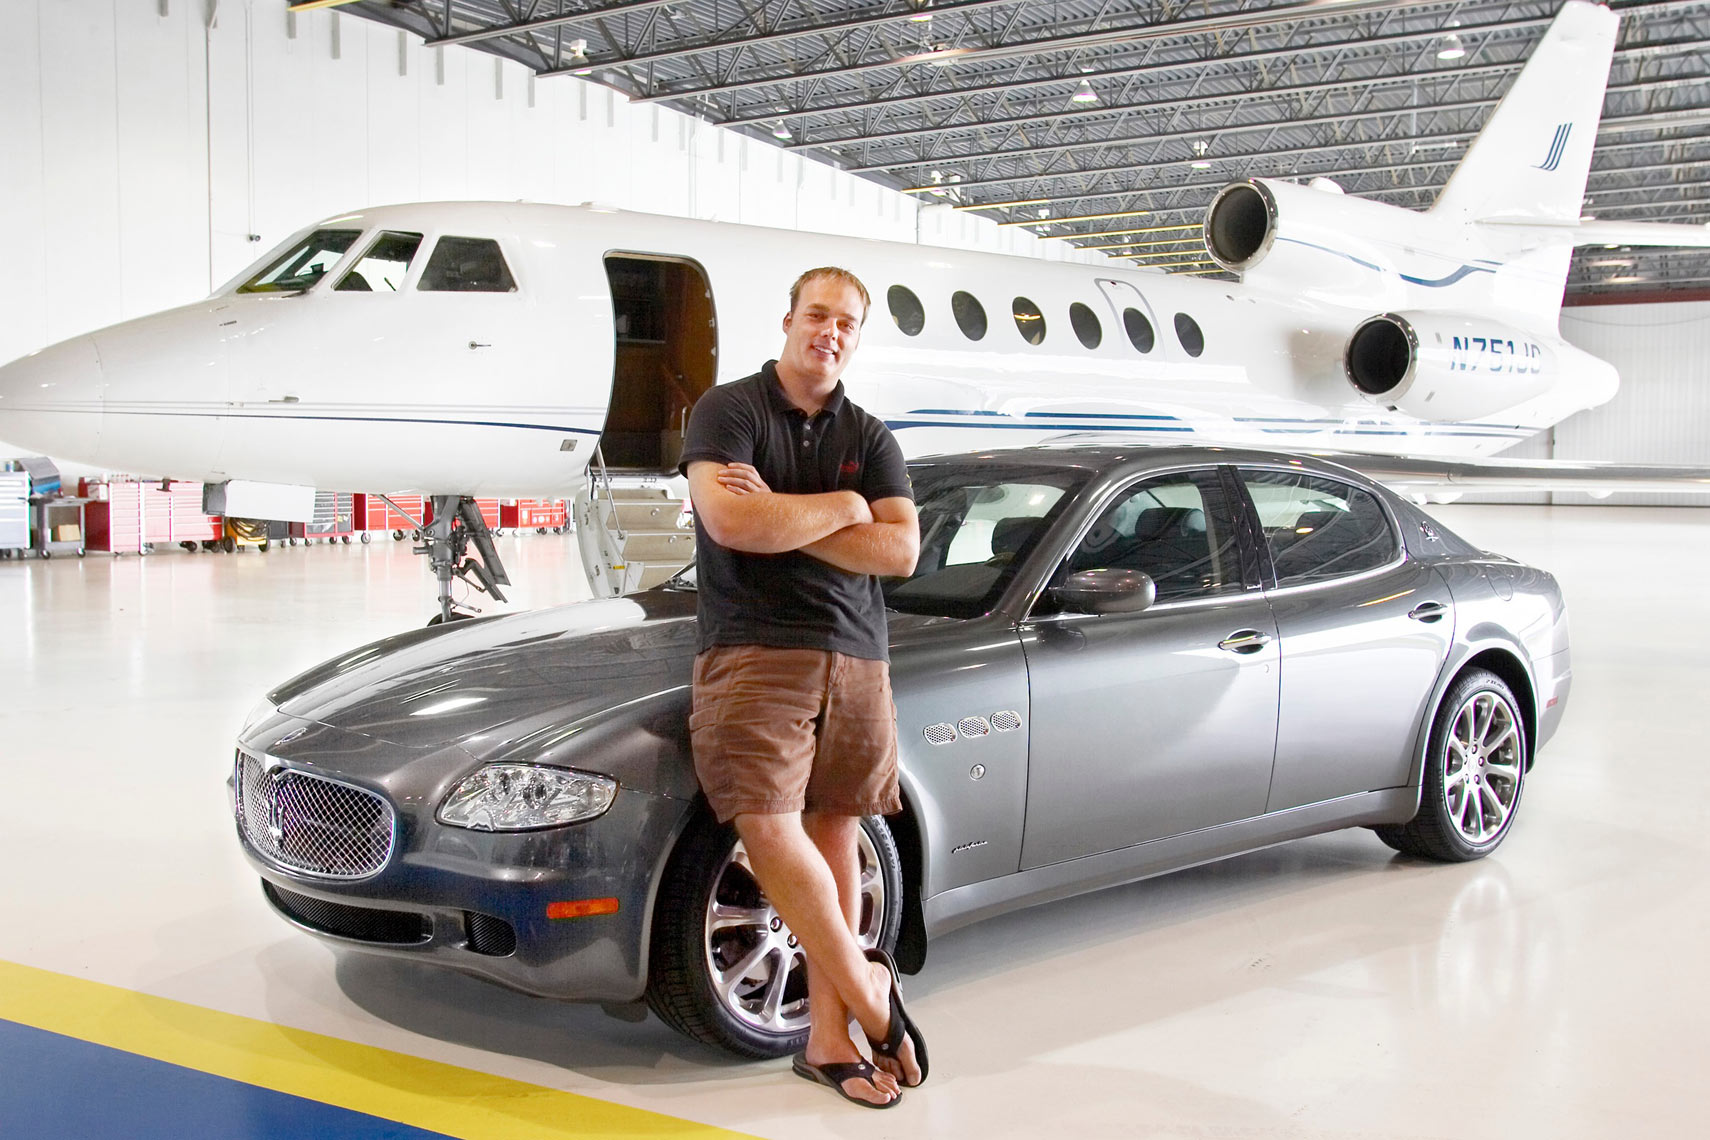 Jet Choice/Man/grey Maserati/jet/lifestyle photography